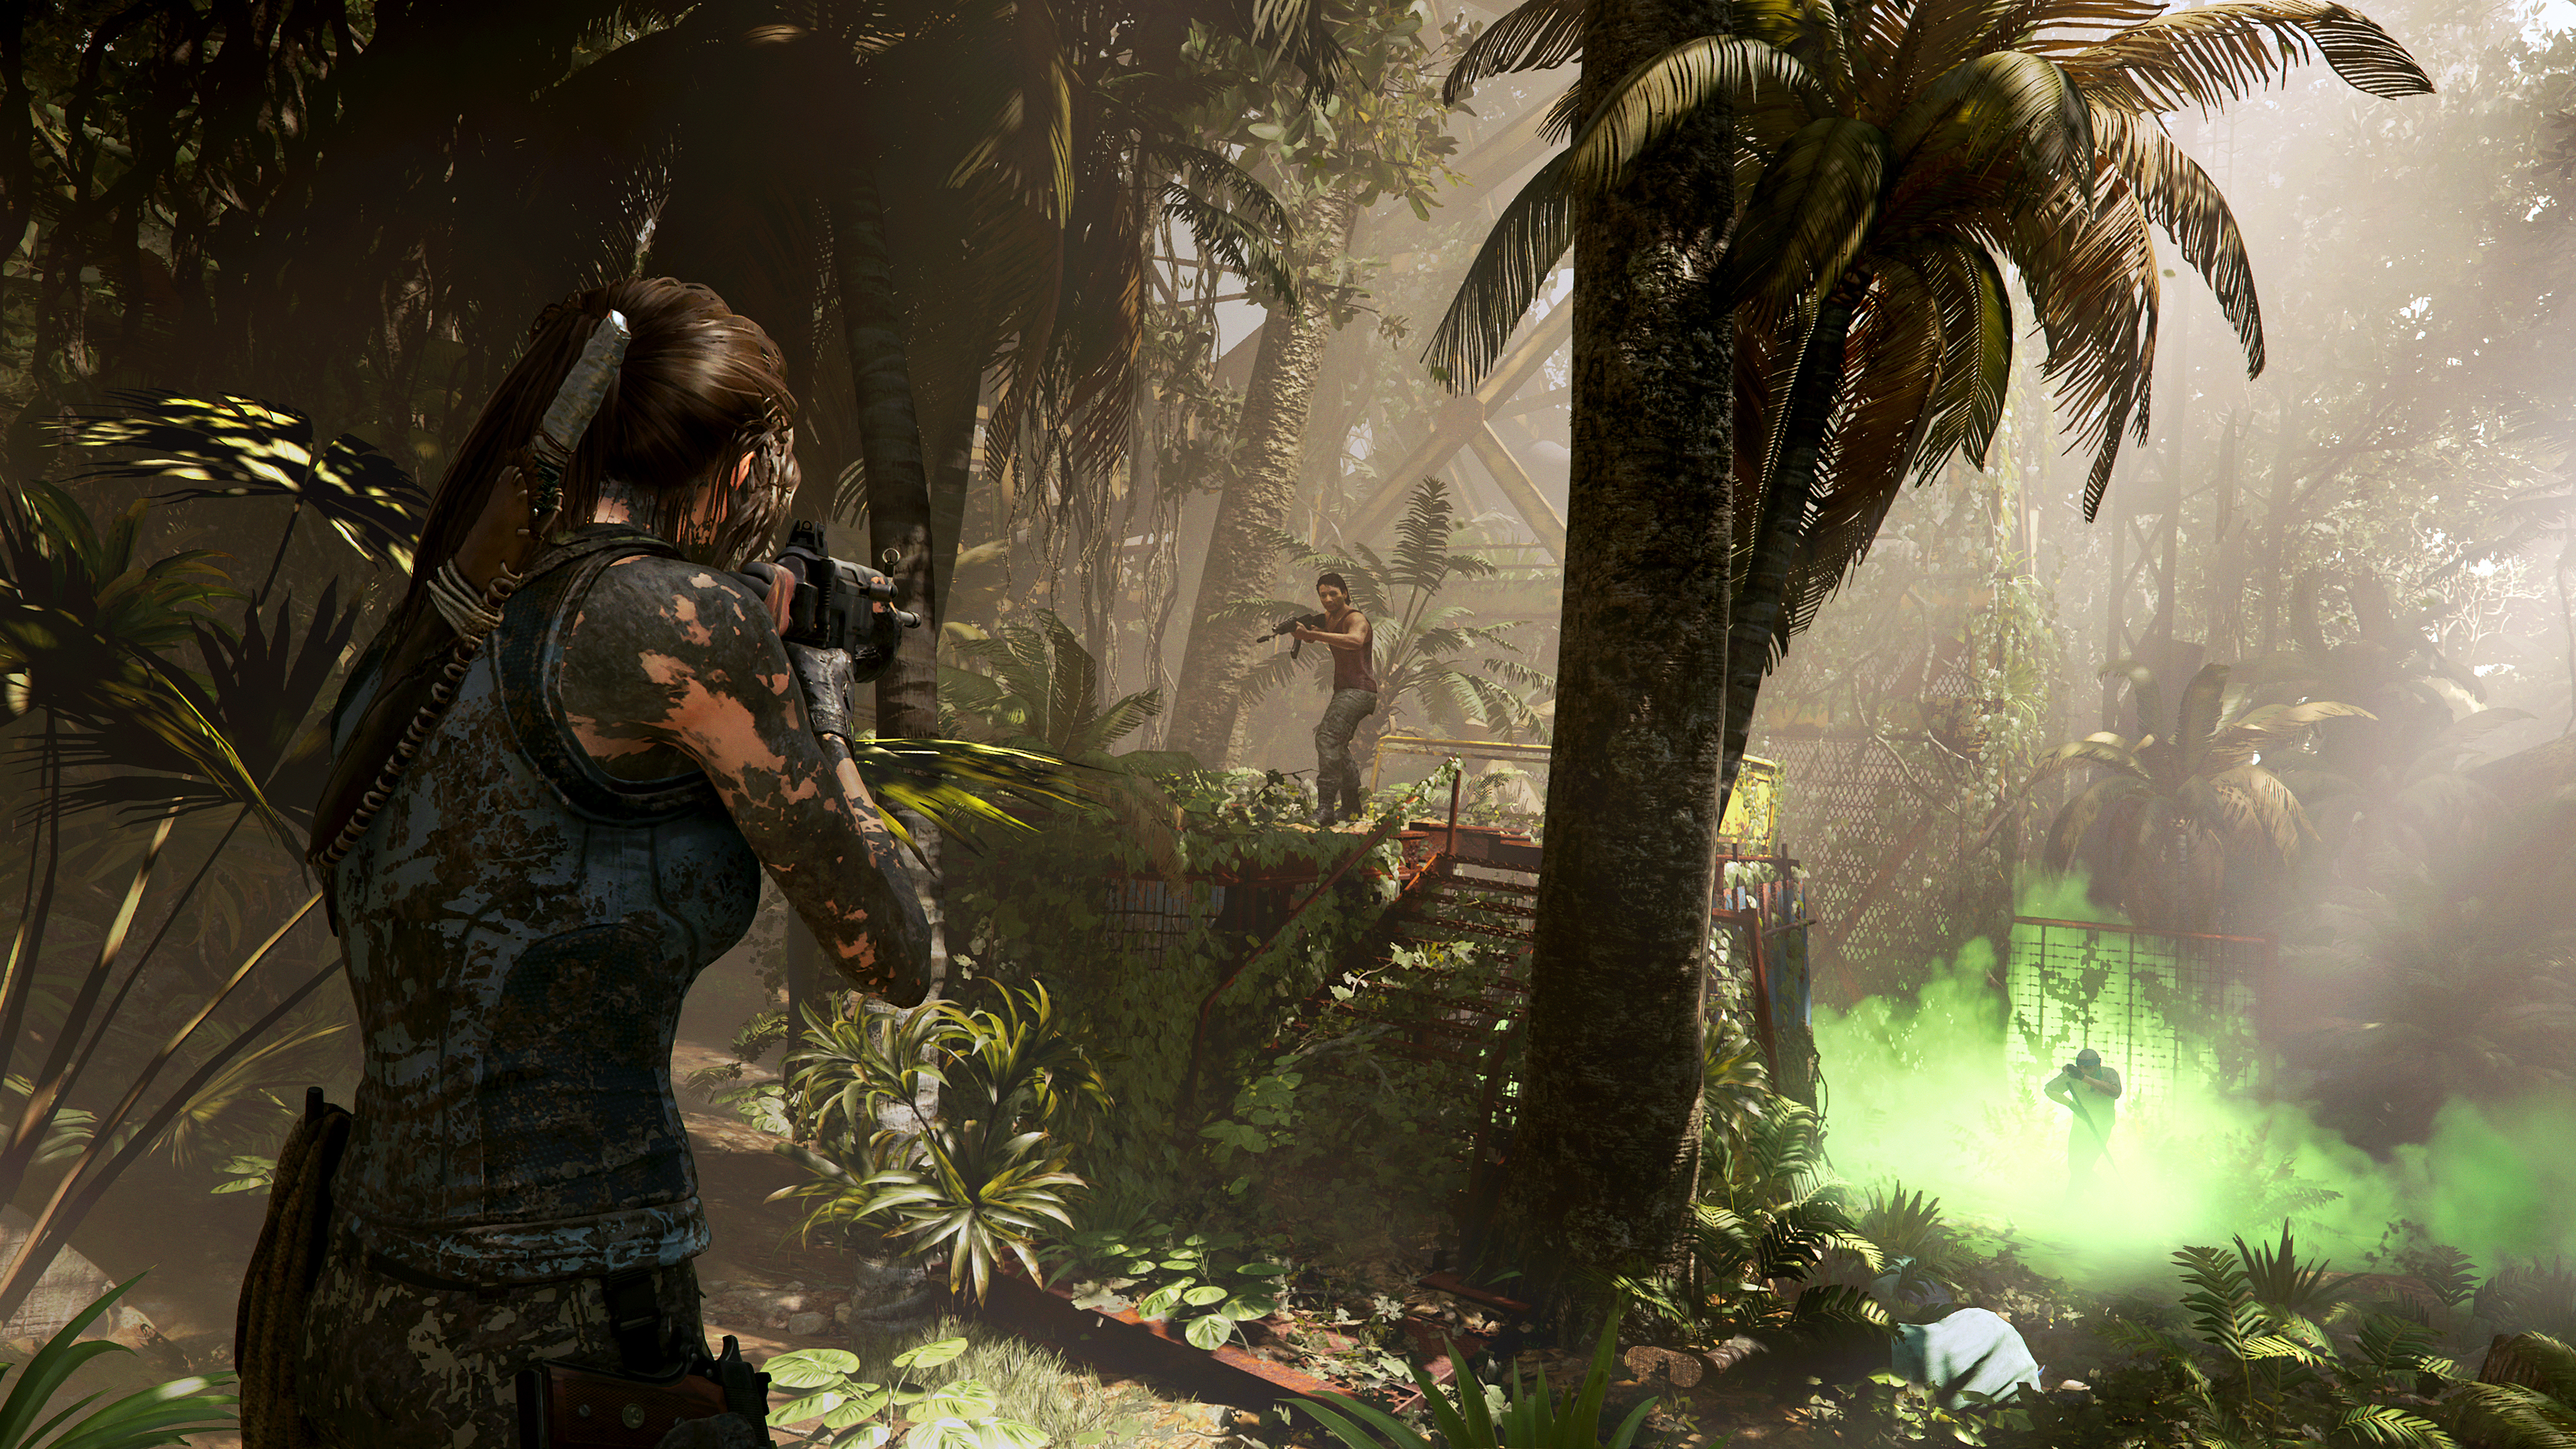 Gaming Shadow Of The Tomb Raider Dx12 Upgrading From An Intel